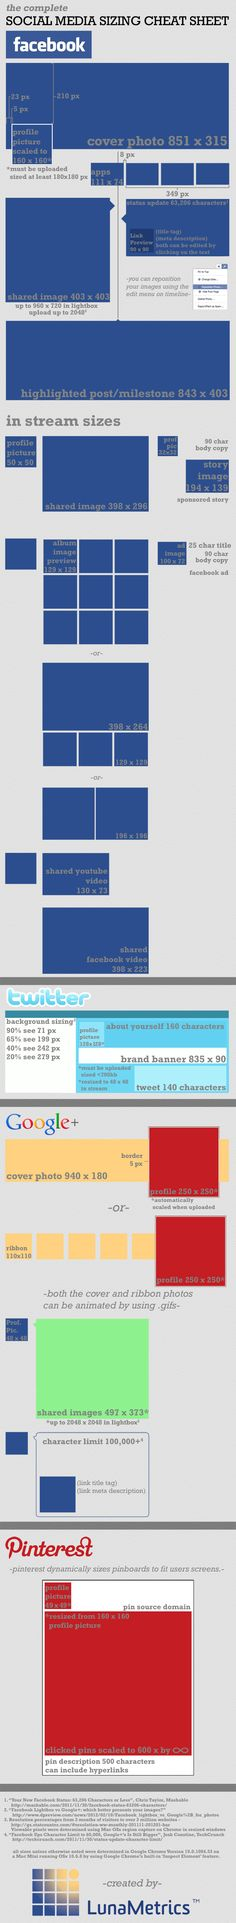 Buenísimo! The Complete Social Media Sizing Cheat Sheet